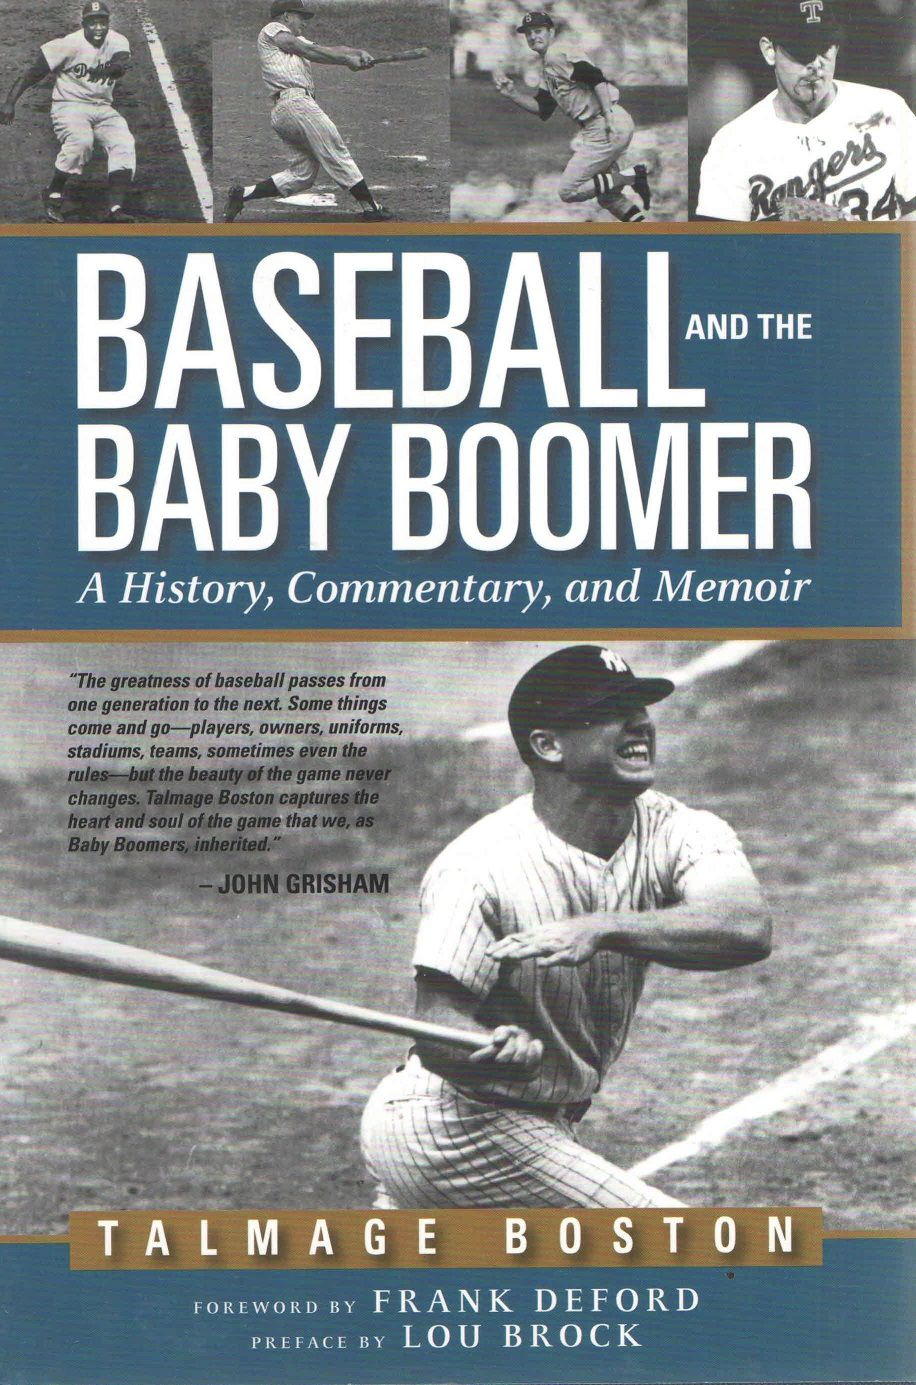 Baseball and the Baby Boomer: A History, Commentary, and Memoir, by Talmage Boston; published by Bright Sky Press, 1st printing, 2009; signed and dated by the author with a personal note. www.amazon.com/shops/JerseyGirlBooks